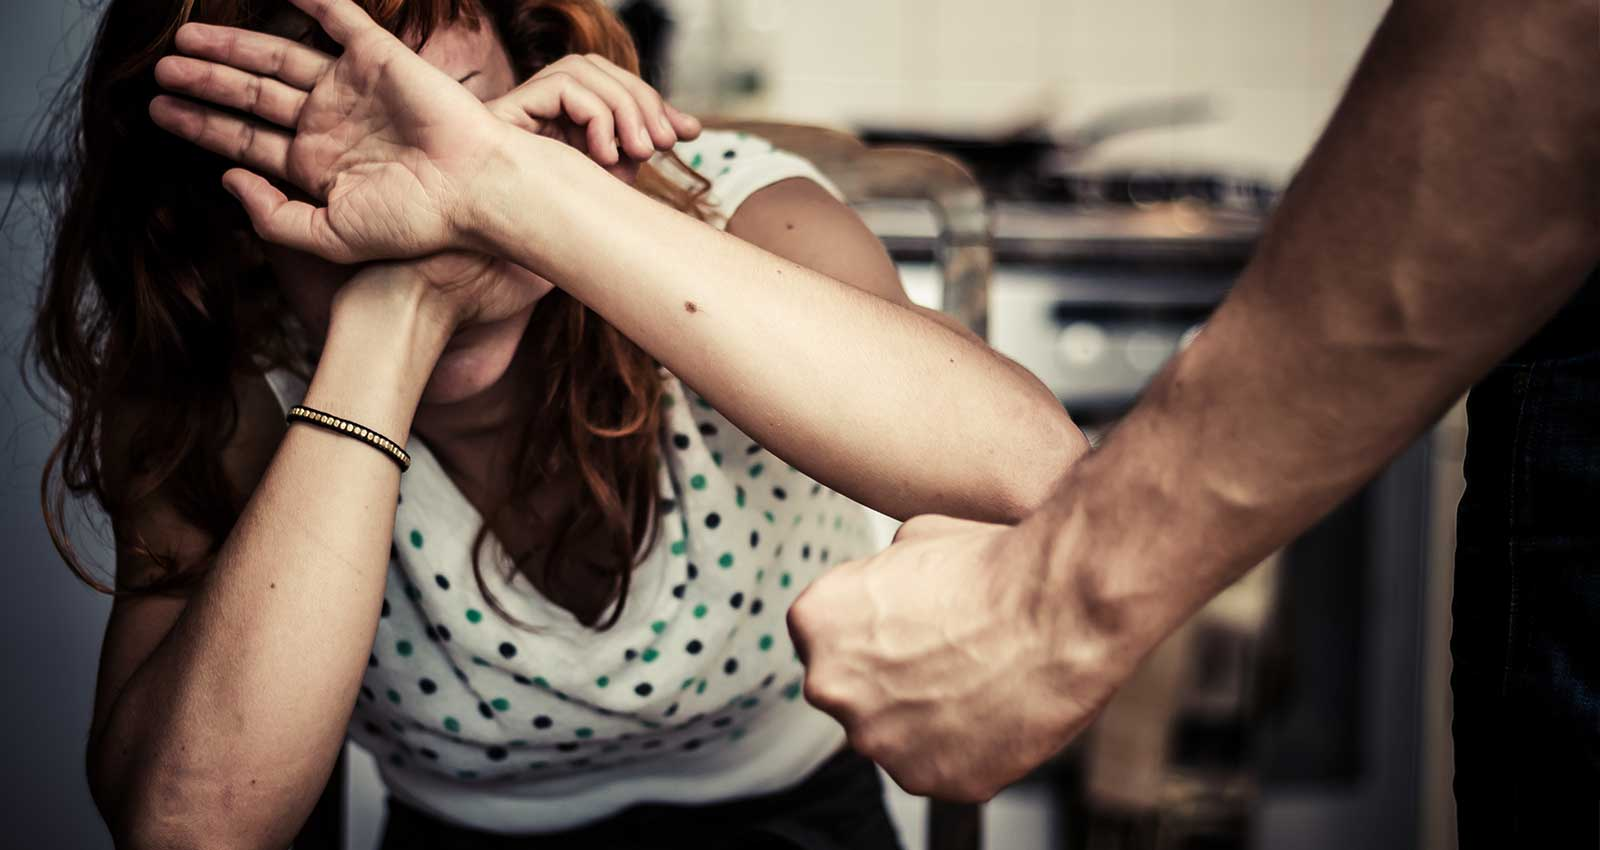 What to Do If You're in a Domestic Violence Dispute